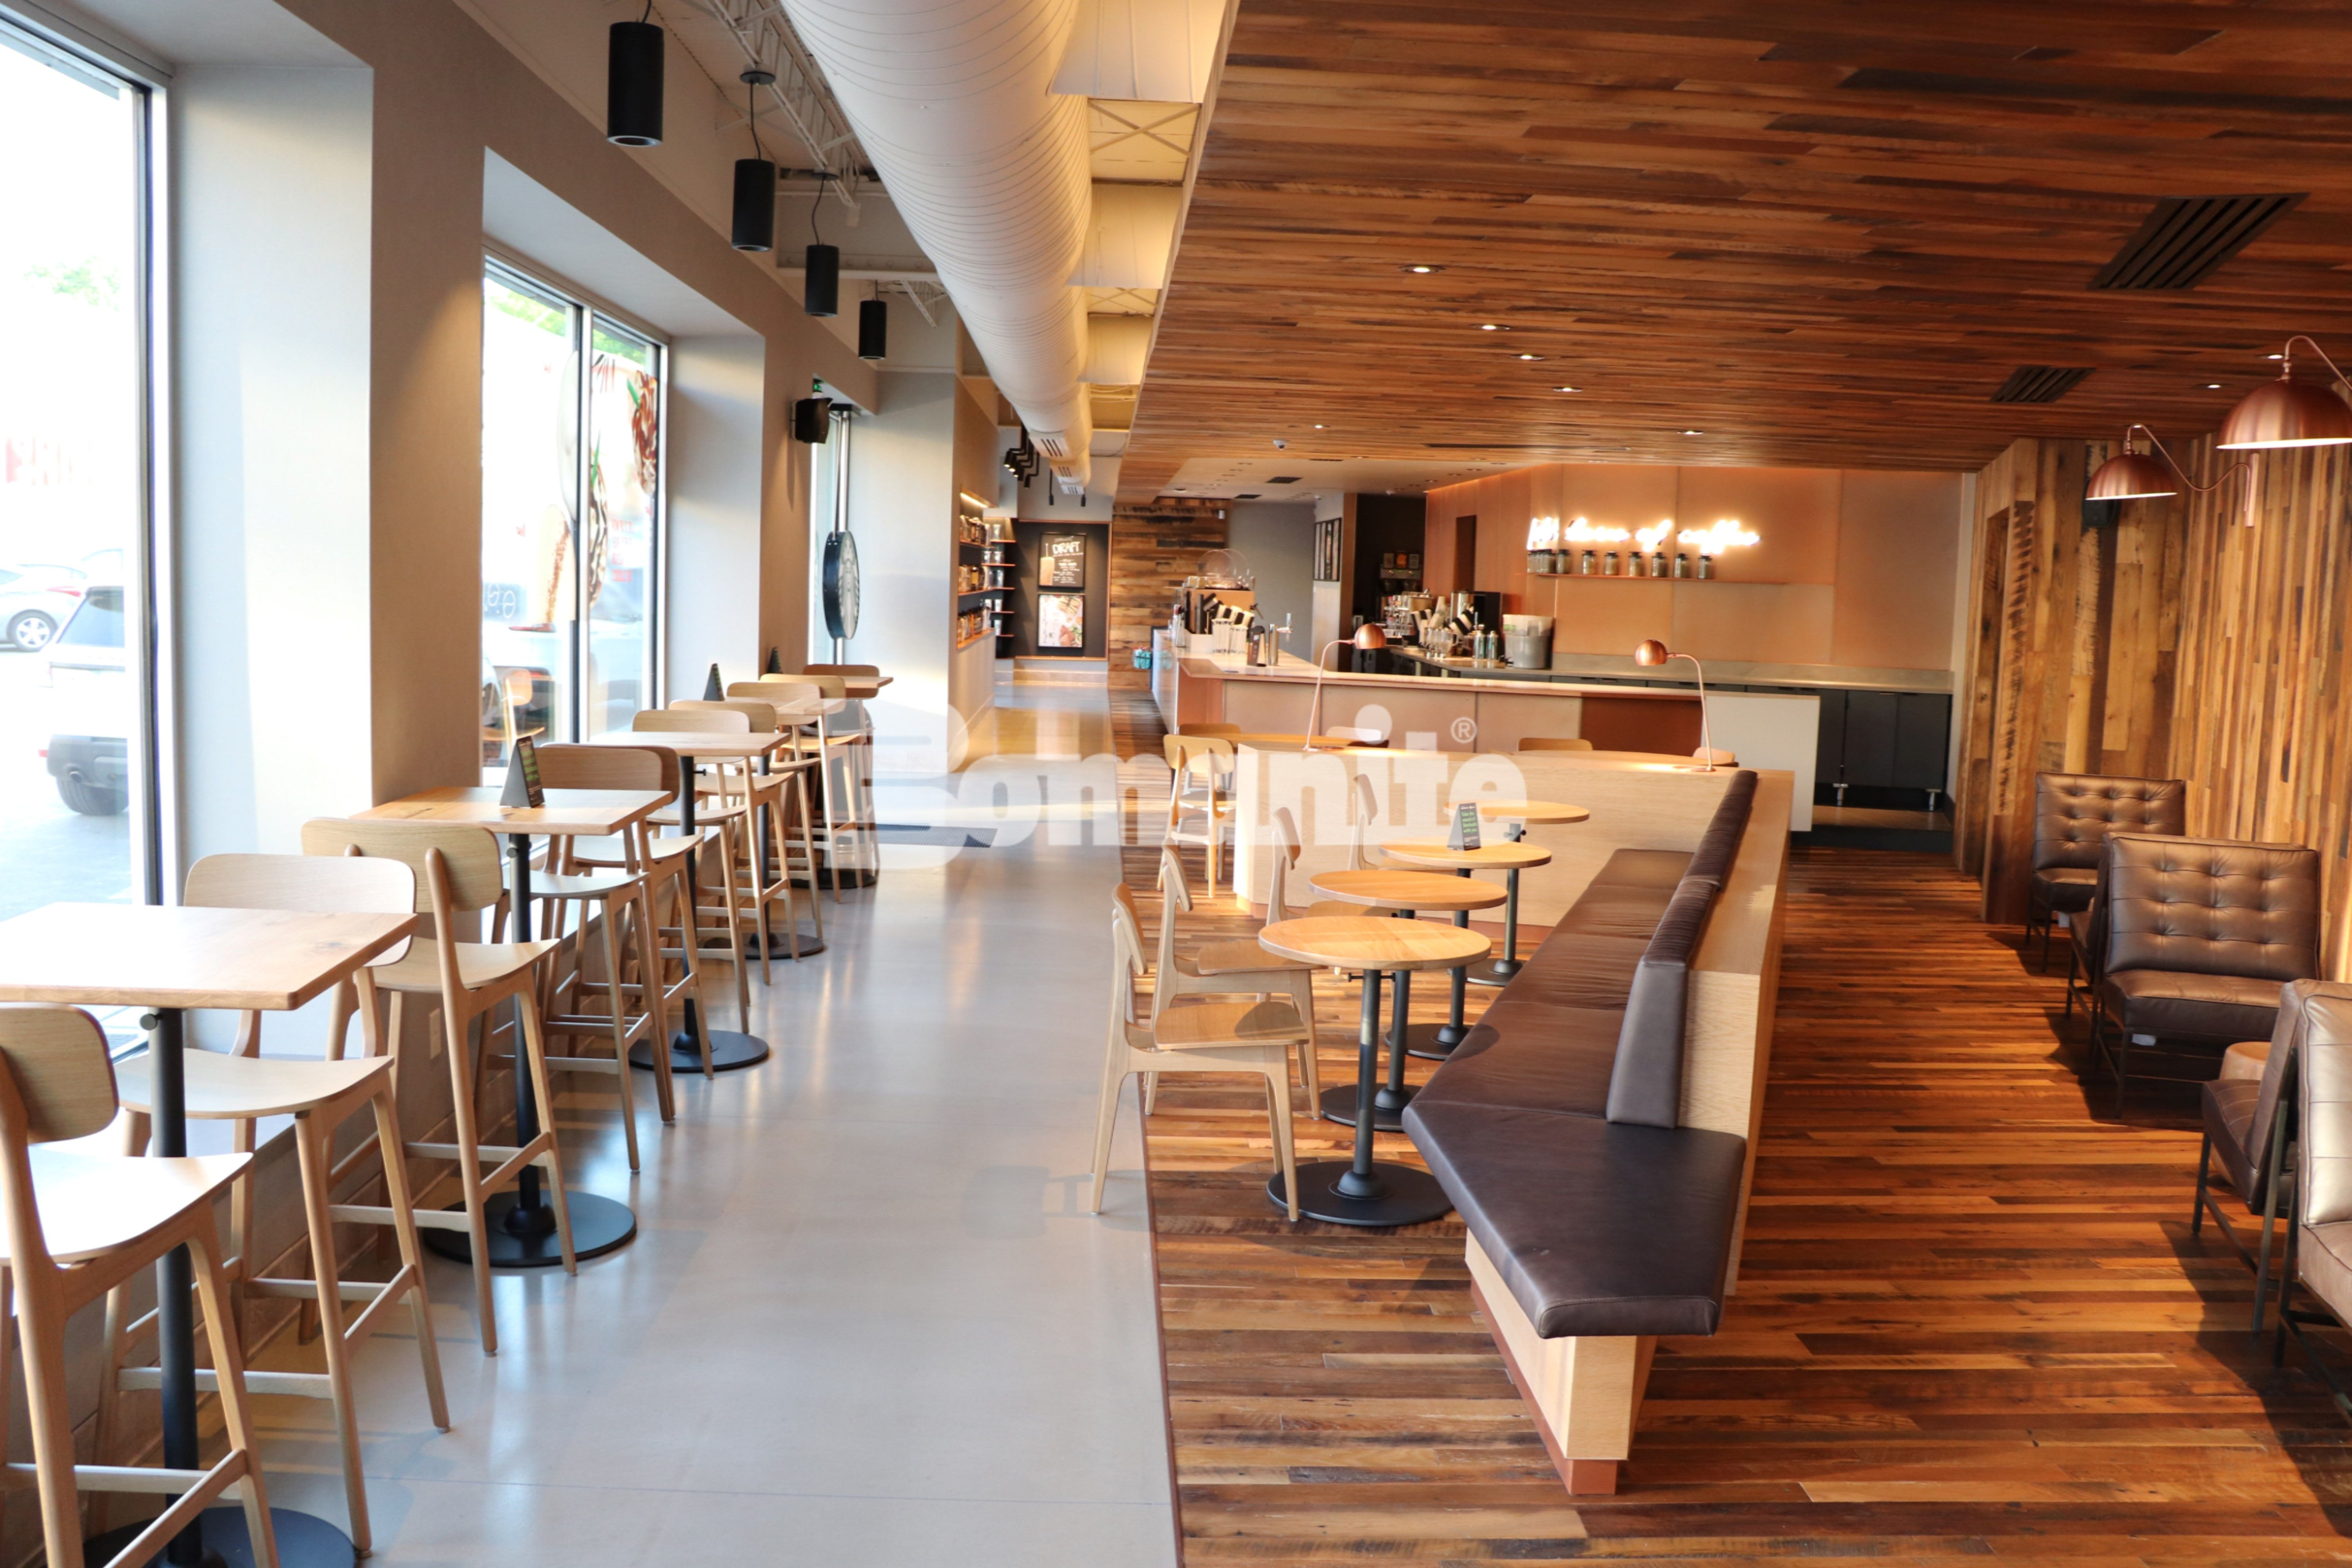 Prototype flooring of Bomanite Custom Polishing System with Modenal SL installed by Bomanite Licensee Musselman & Hall Contractors, LLC, is featured at this Starbucks in the Brookside neighborhood of Kansas City.